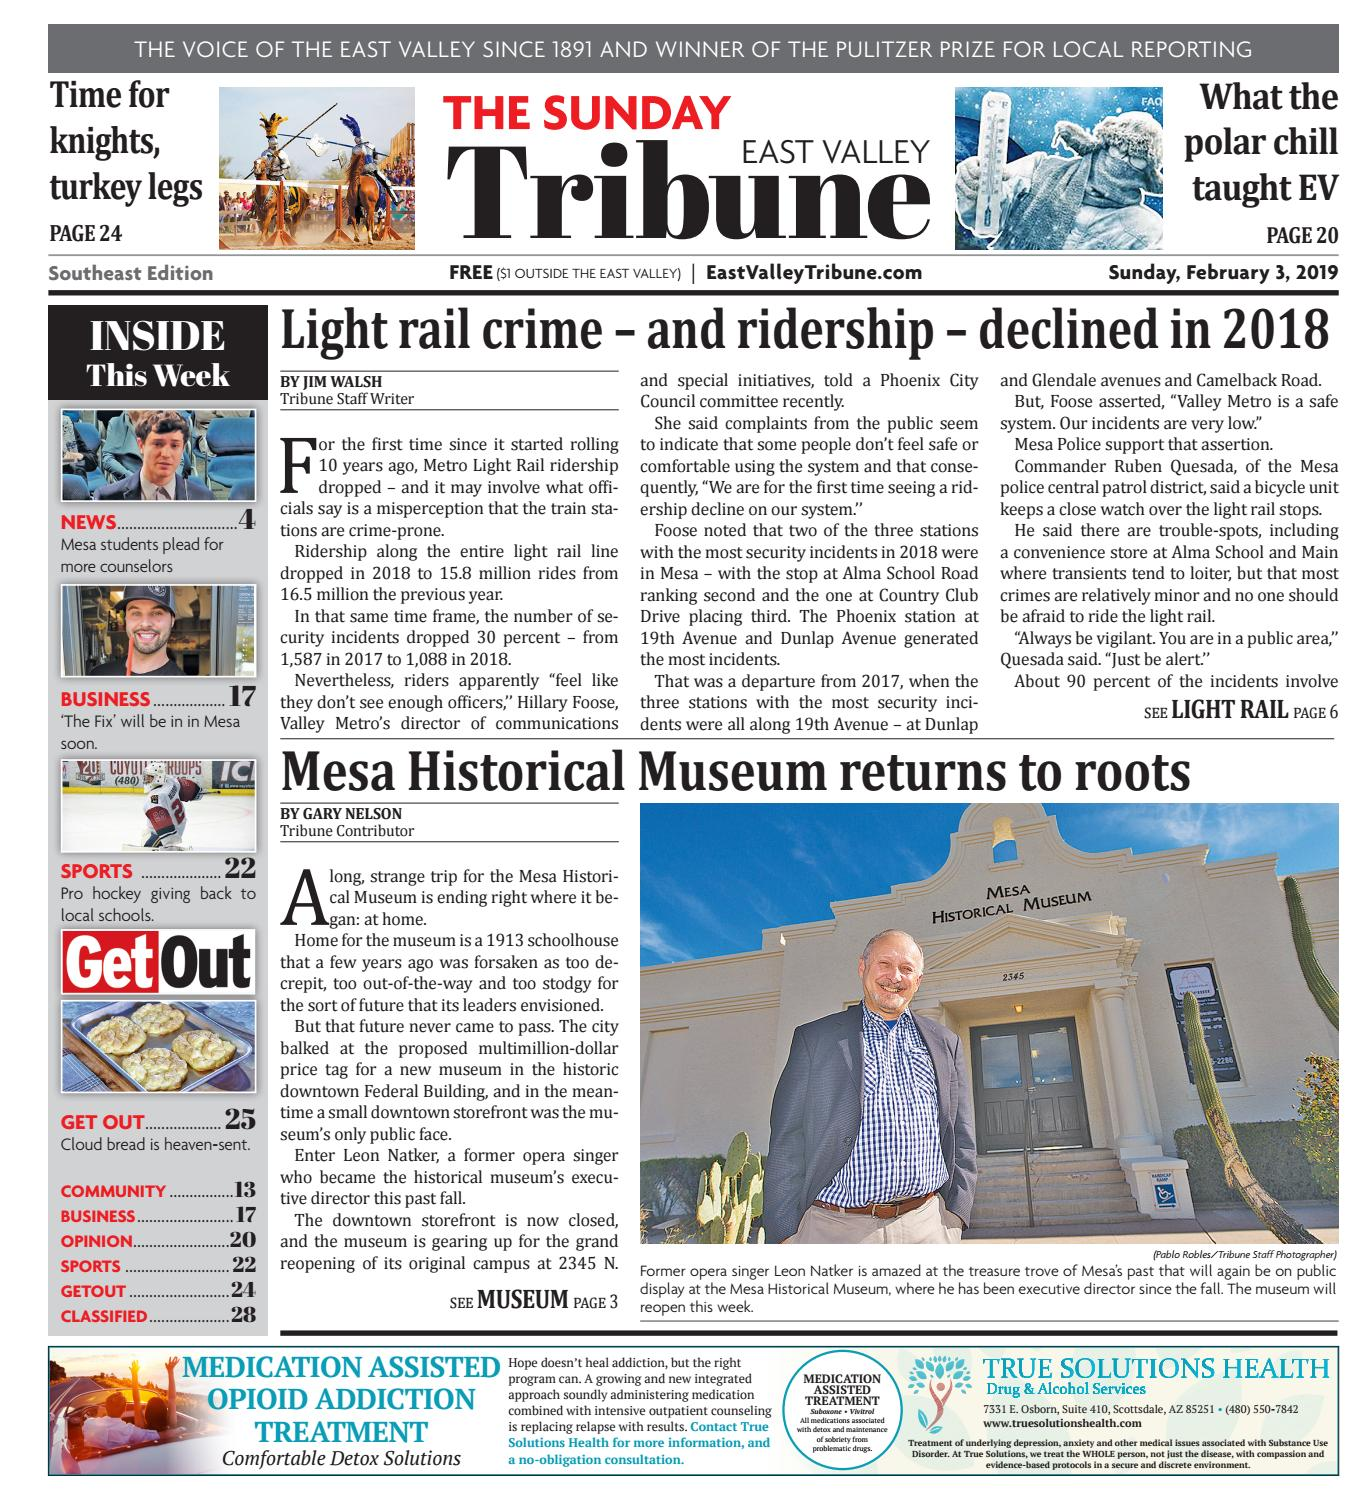 ab477be0811 East Valley Tribune - Southeast 02-03-2019 by Times Media Group - issuu